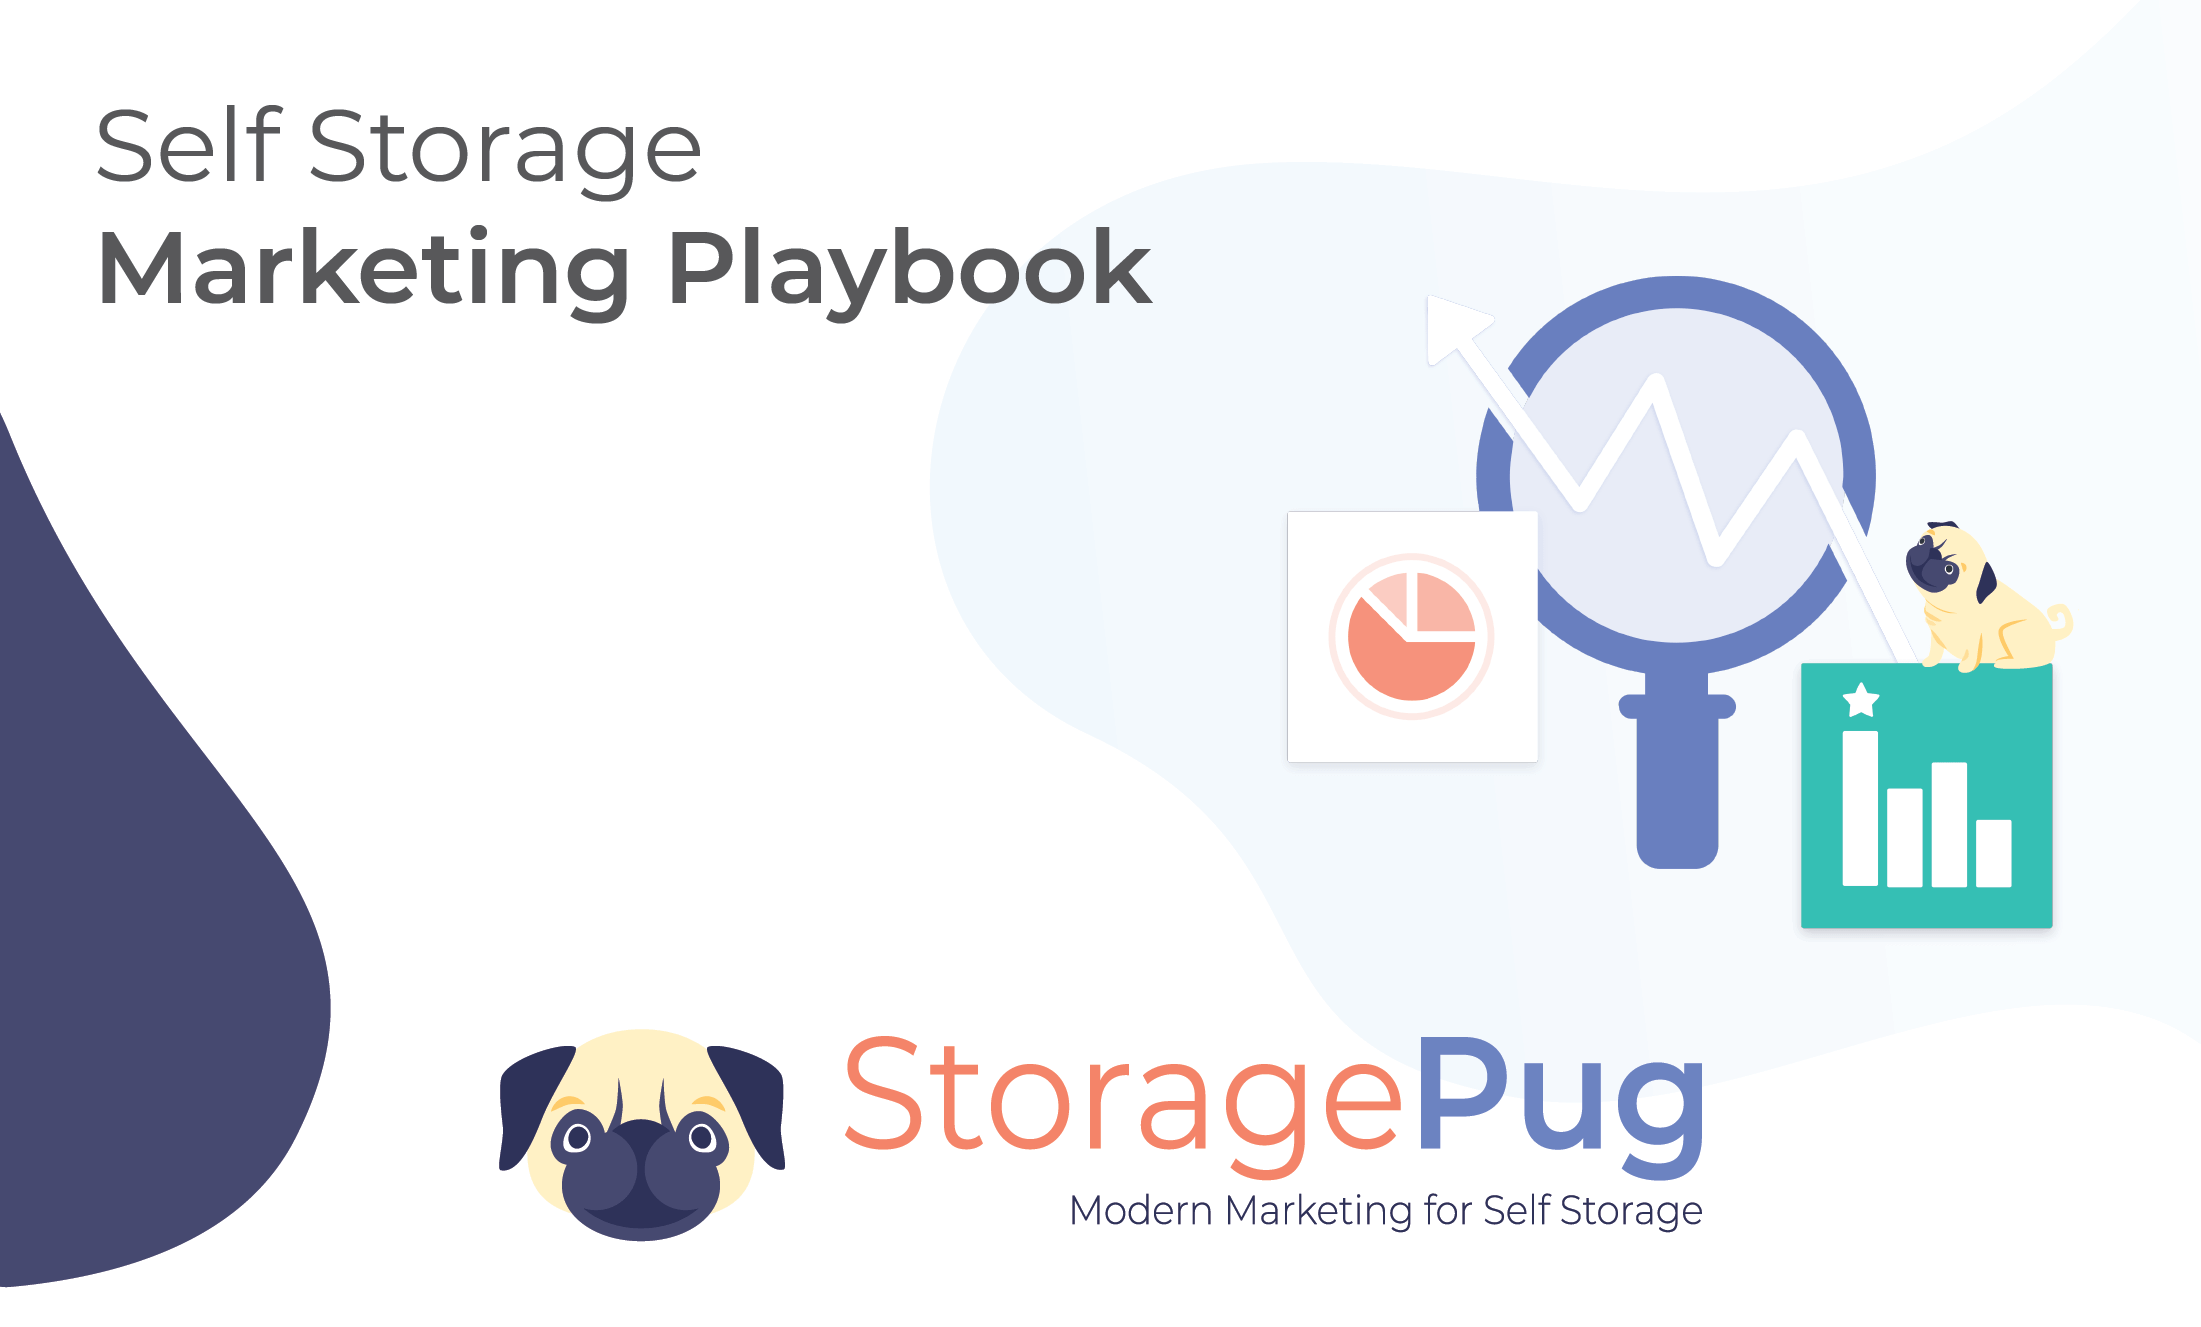 Self Storage Marketing Playbook 2